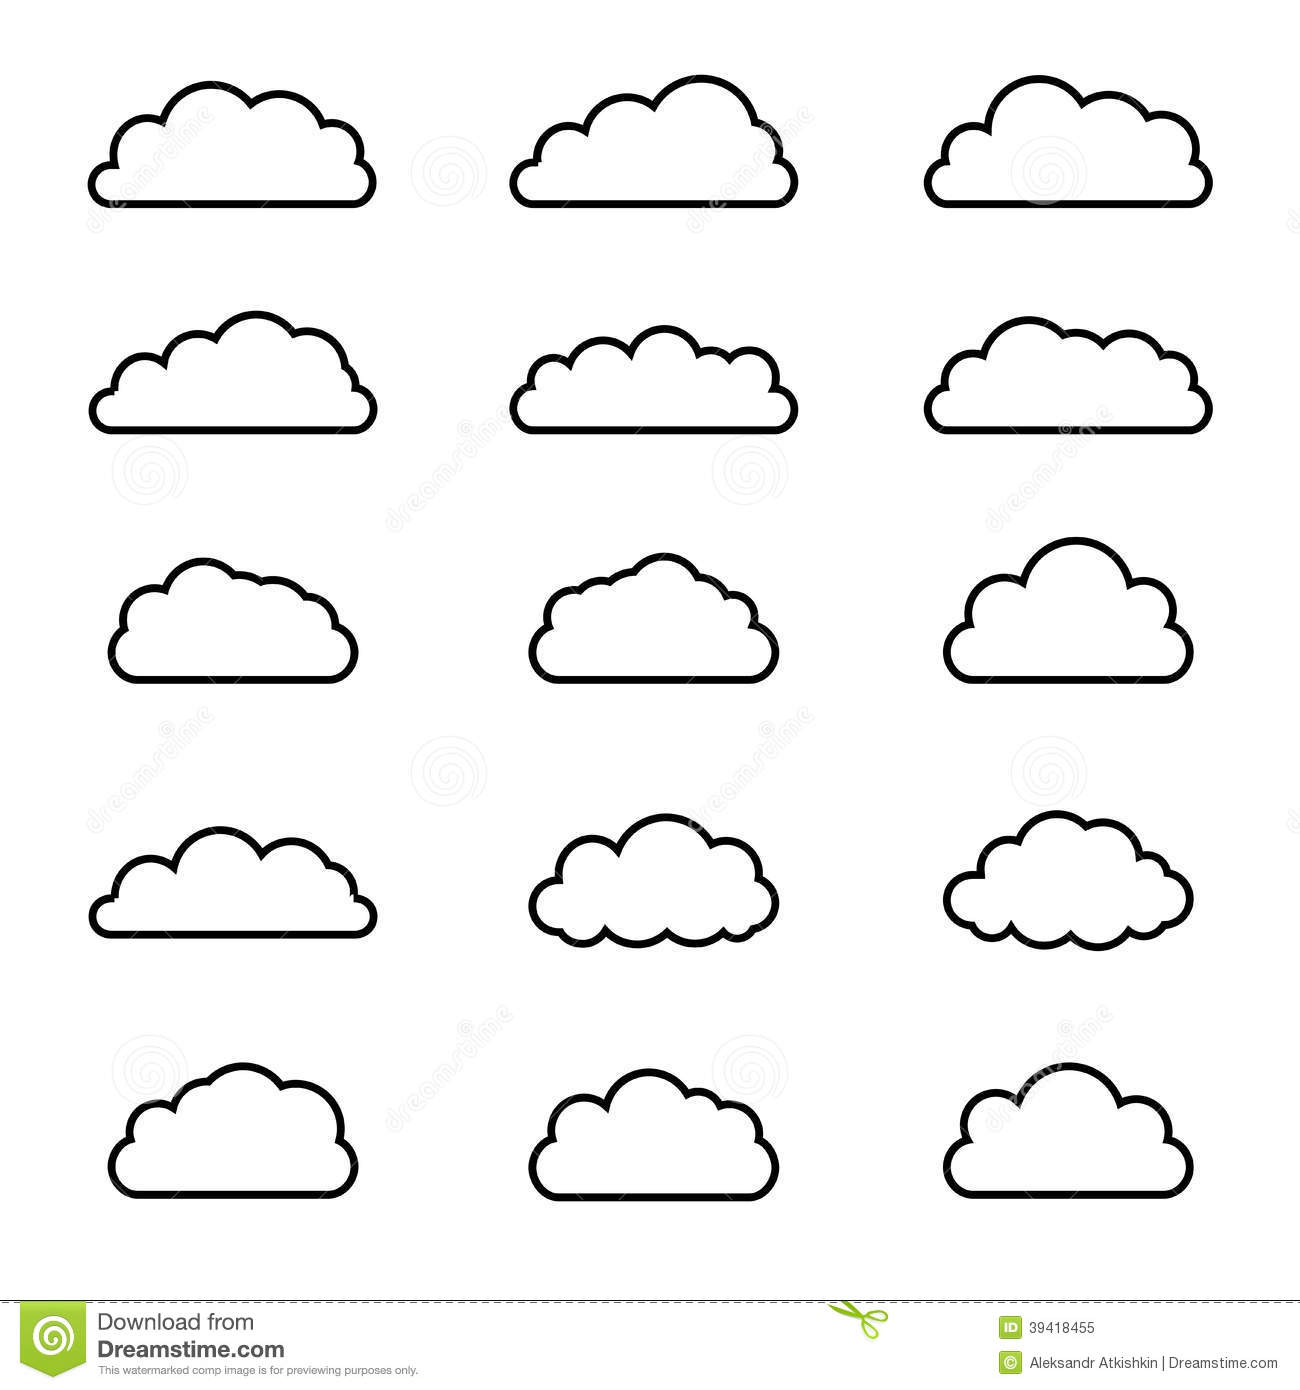 Cloud shapes. Differents icons. Vector illustration.